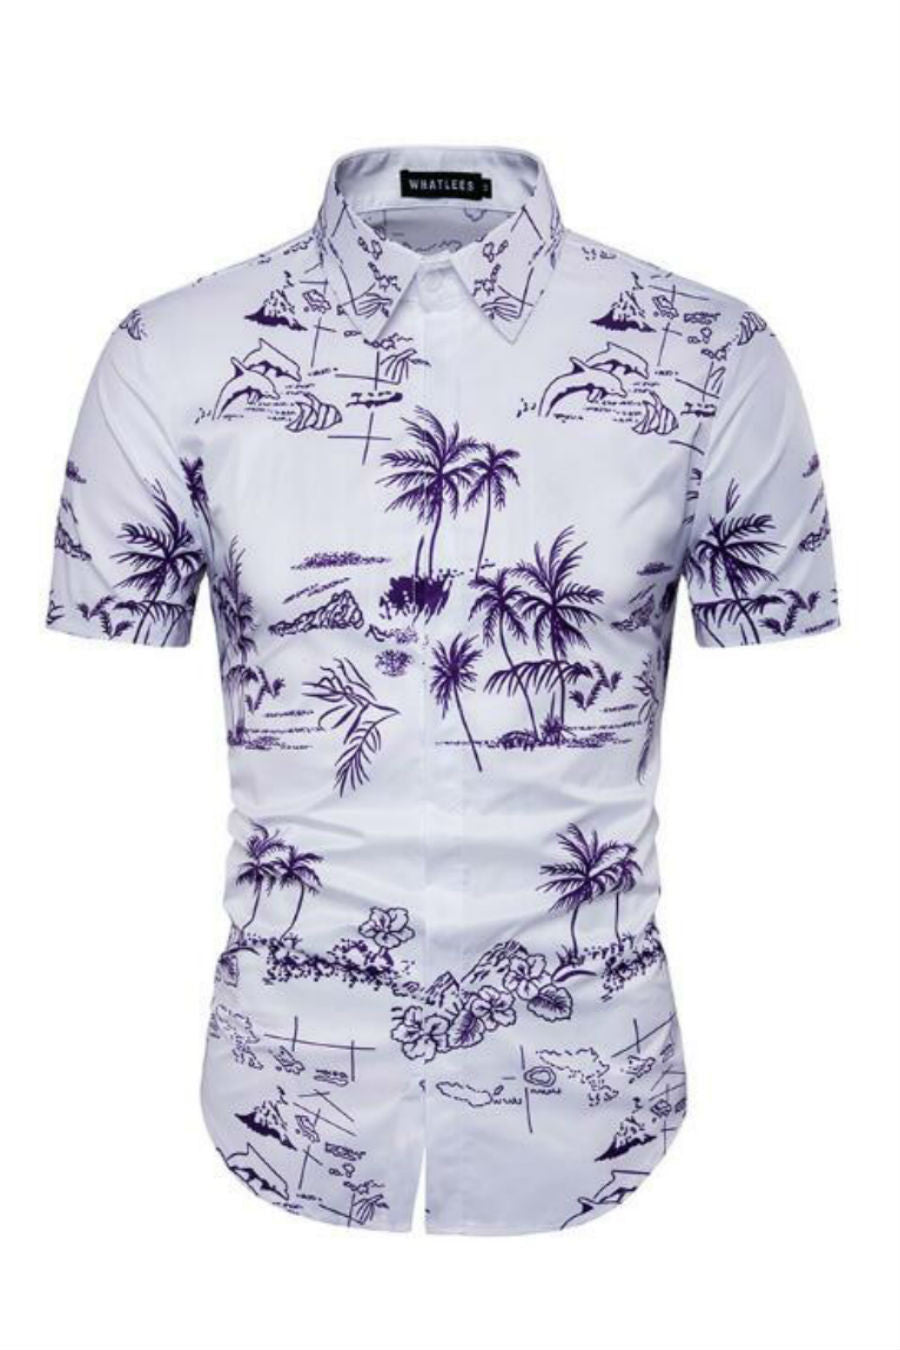 Palm Tree Printed White Shirt